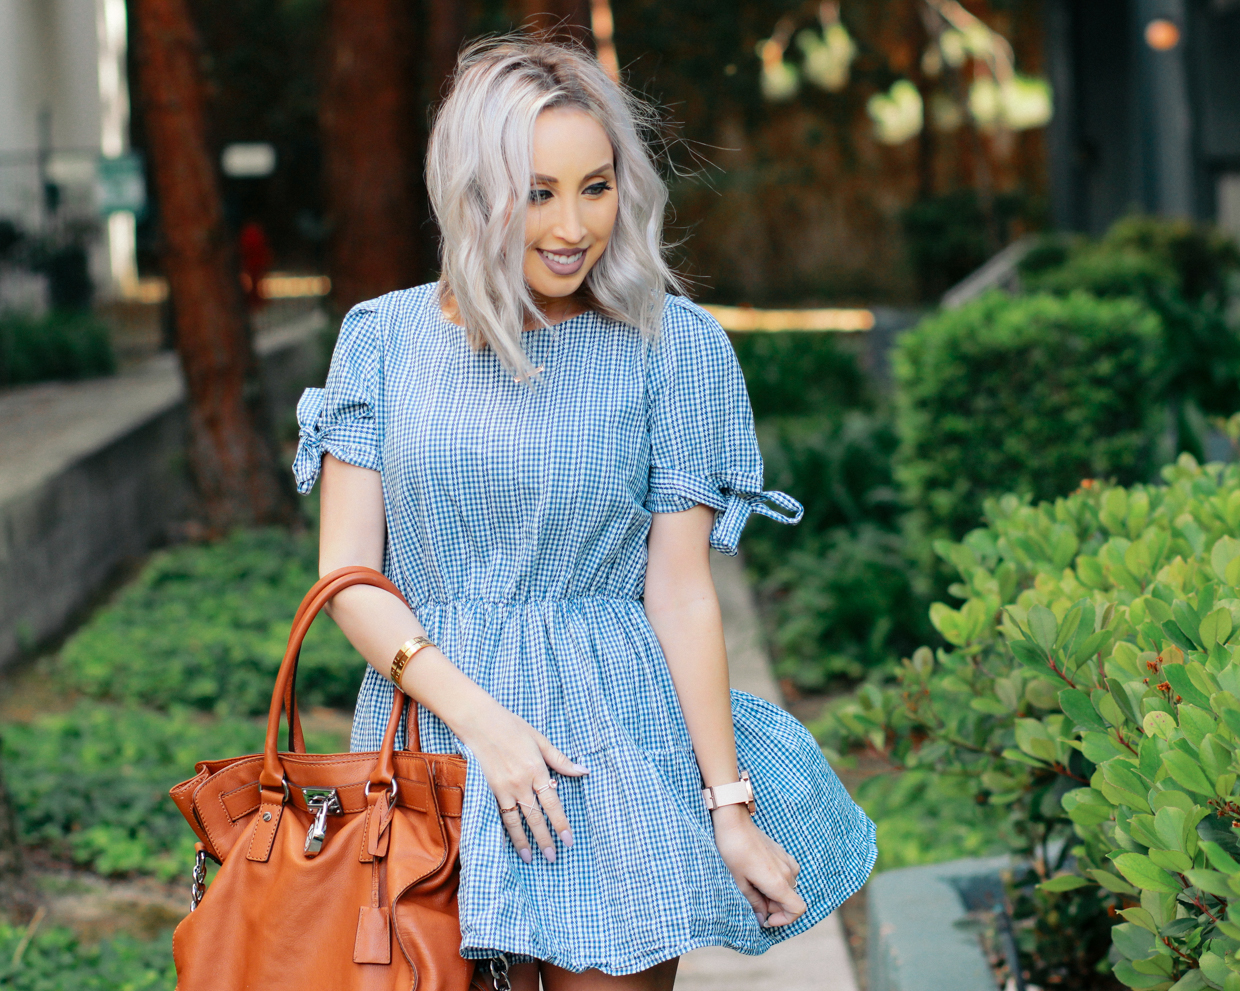 Blondie in the City | Plaid Dress, Camel Michael Kors Bag, Pale Pink Louboutin's